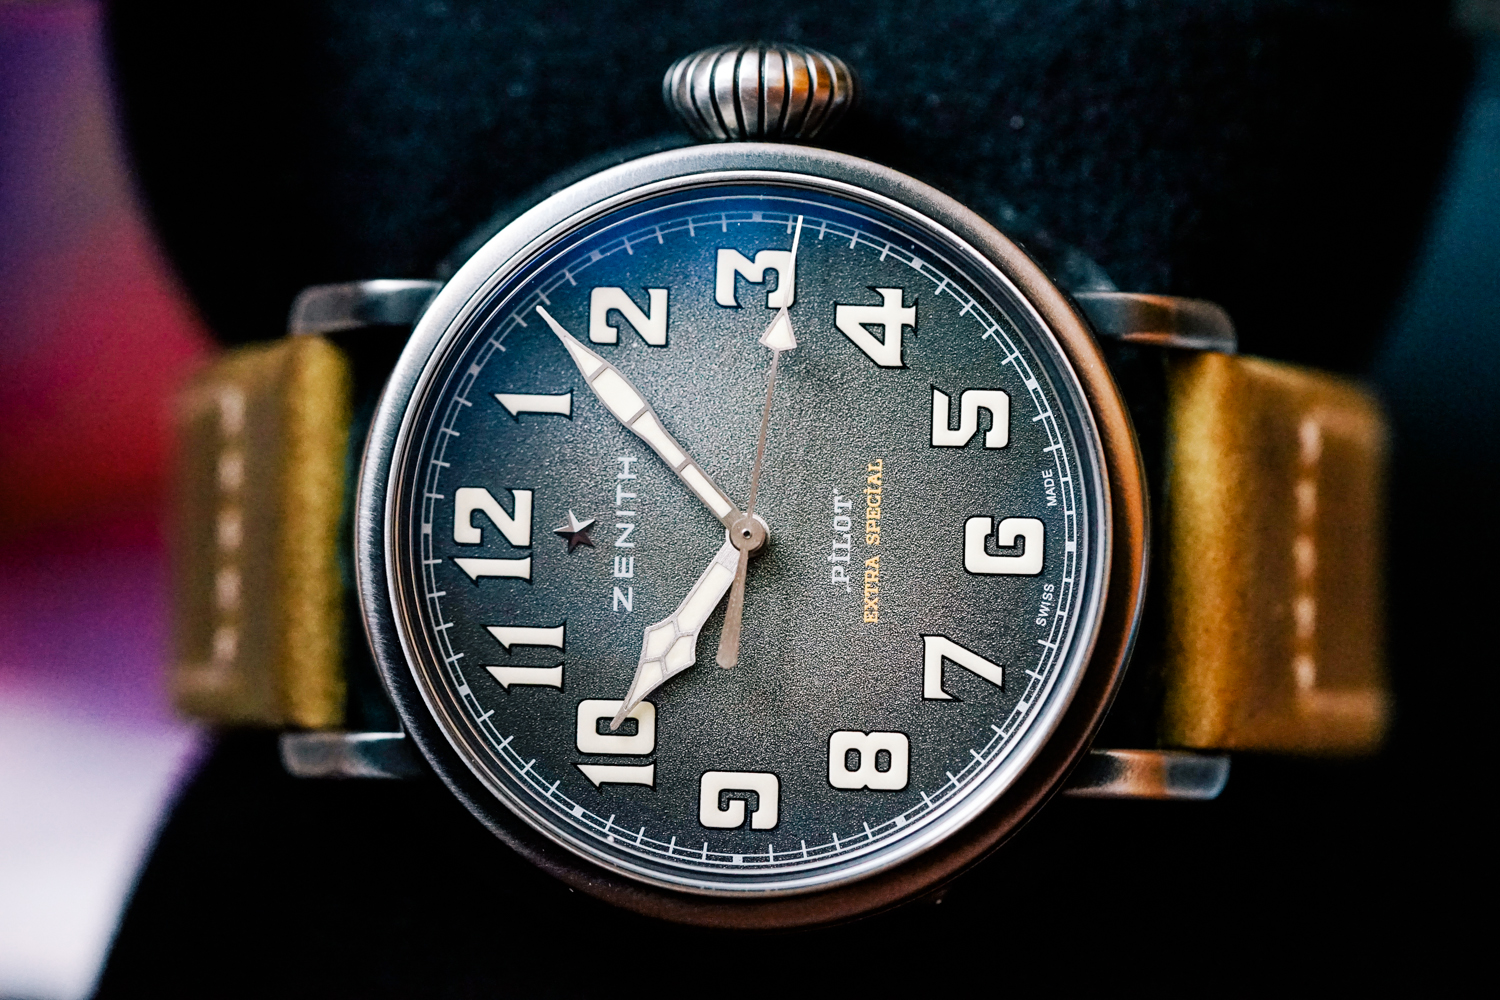 Zenith-Type20-ExtraSpecial-dial